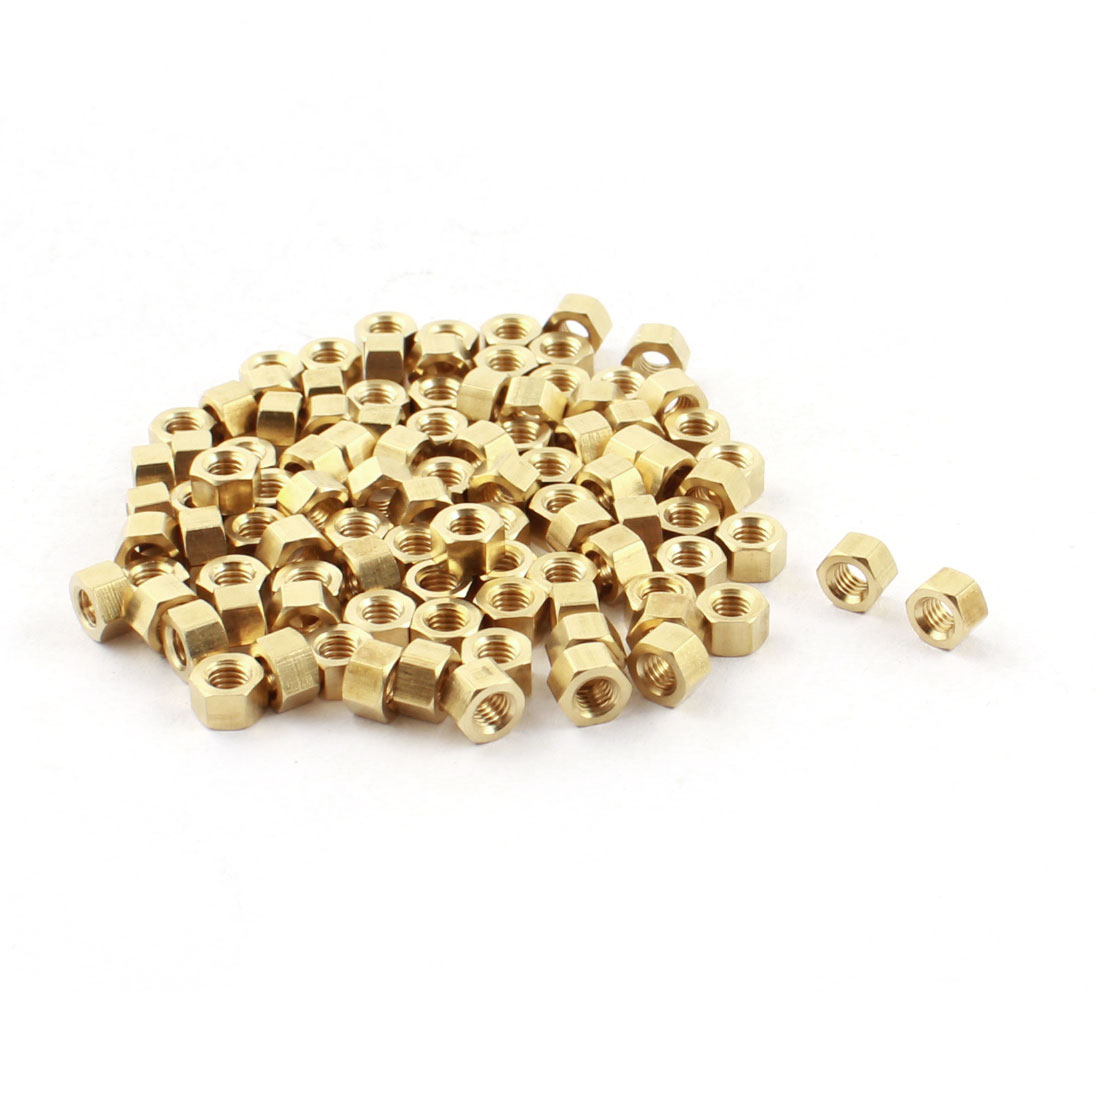 100Pcs M3x3mm Female Thread Dual Ends Gold Tone Brass Pillar Hex Head PCB Standoff Hexagonal Nut Spacer